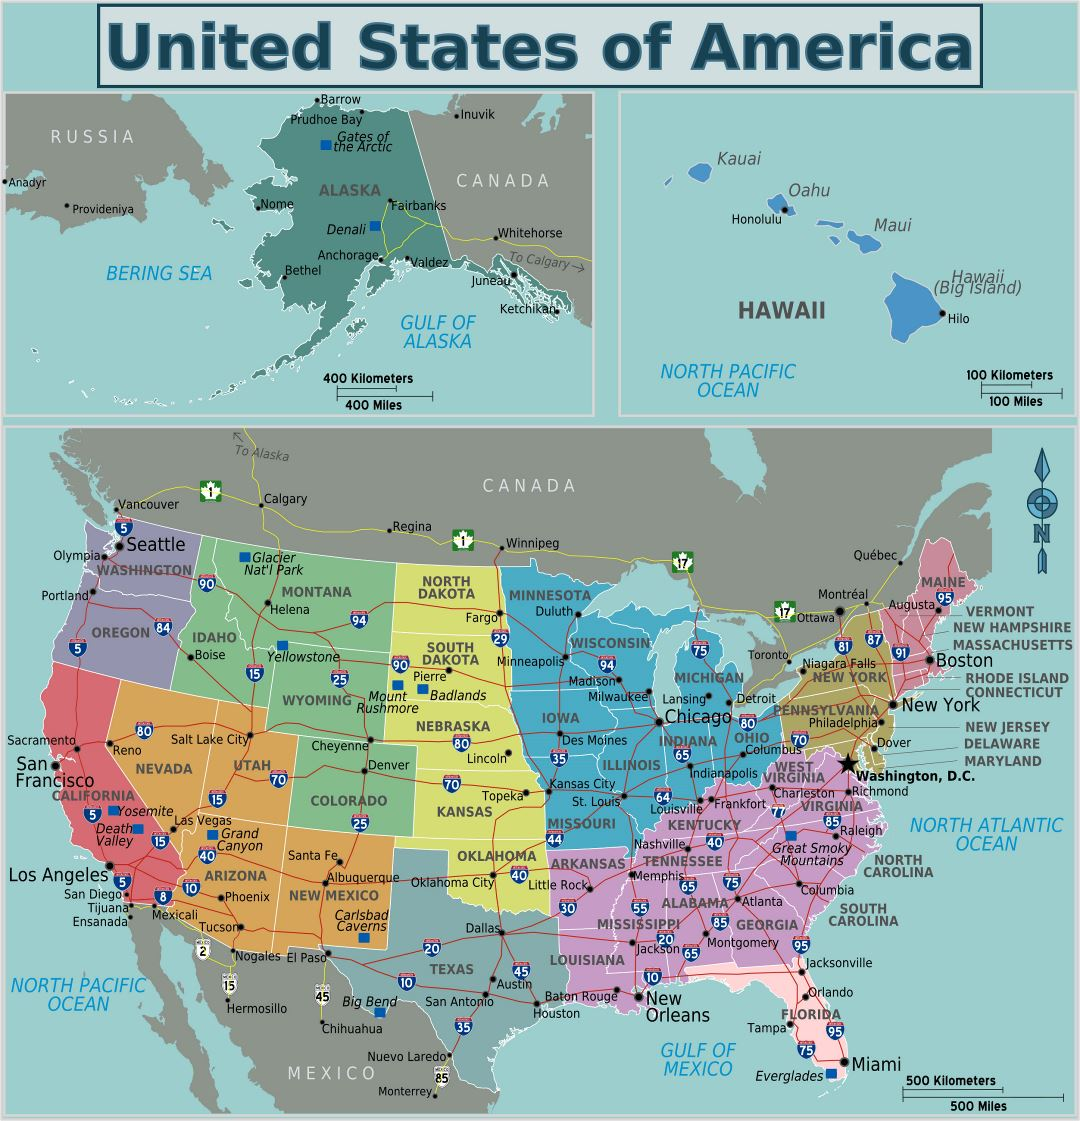 Large regions map of the USA